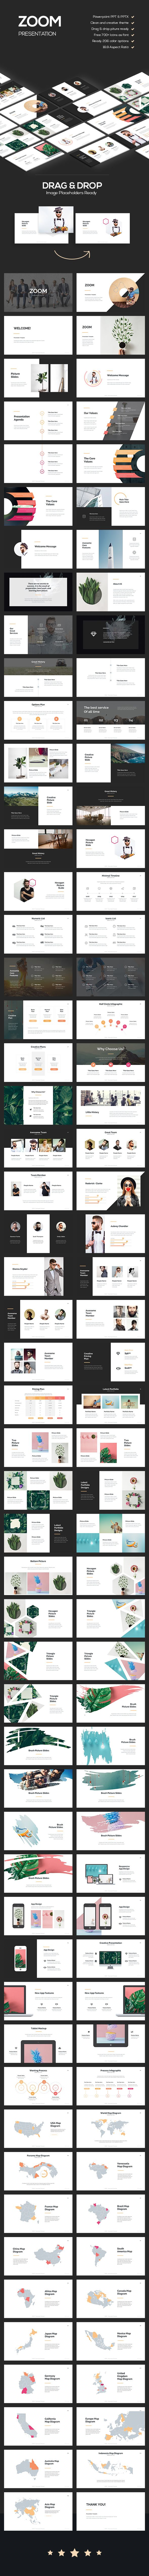 Zoom creative theme pinterest presentation templates creative zoom creative powerpoint template 106 multipurpose slides toneelgroepblik Images